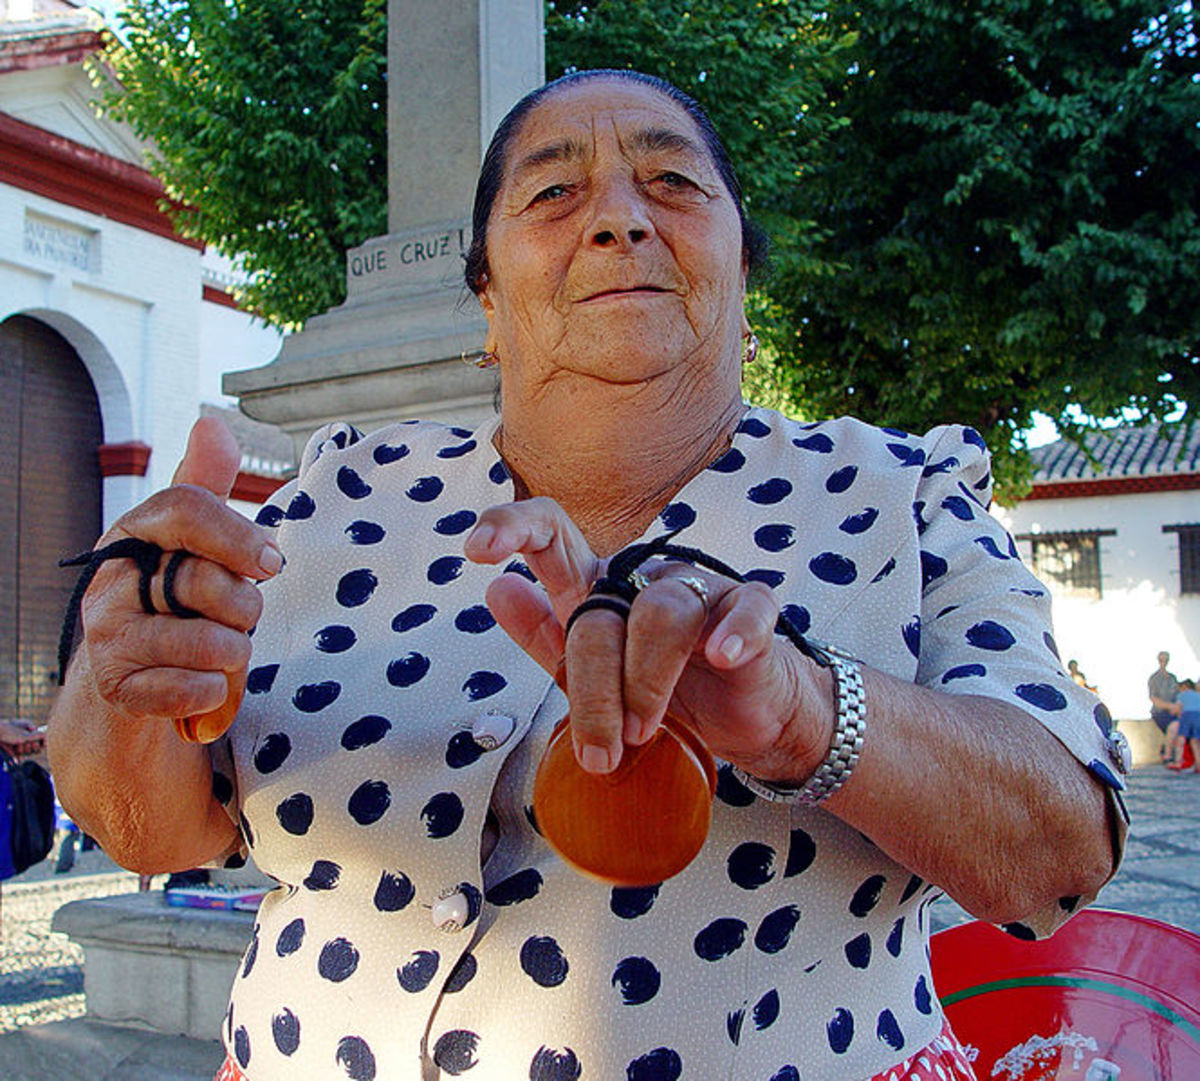 Castanets worn on the middle fingers